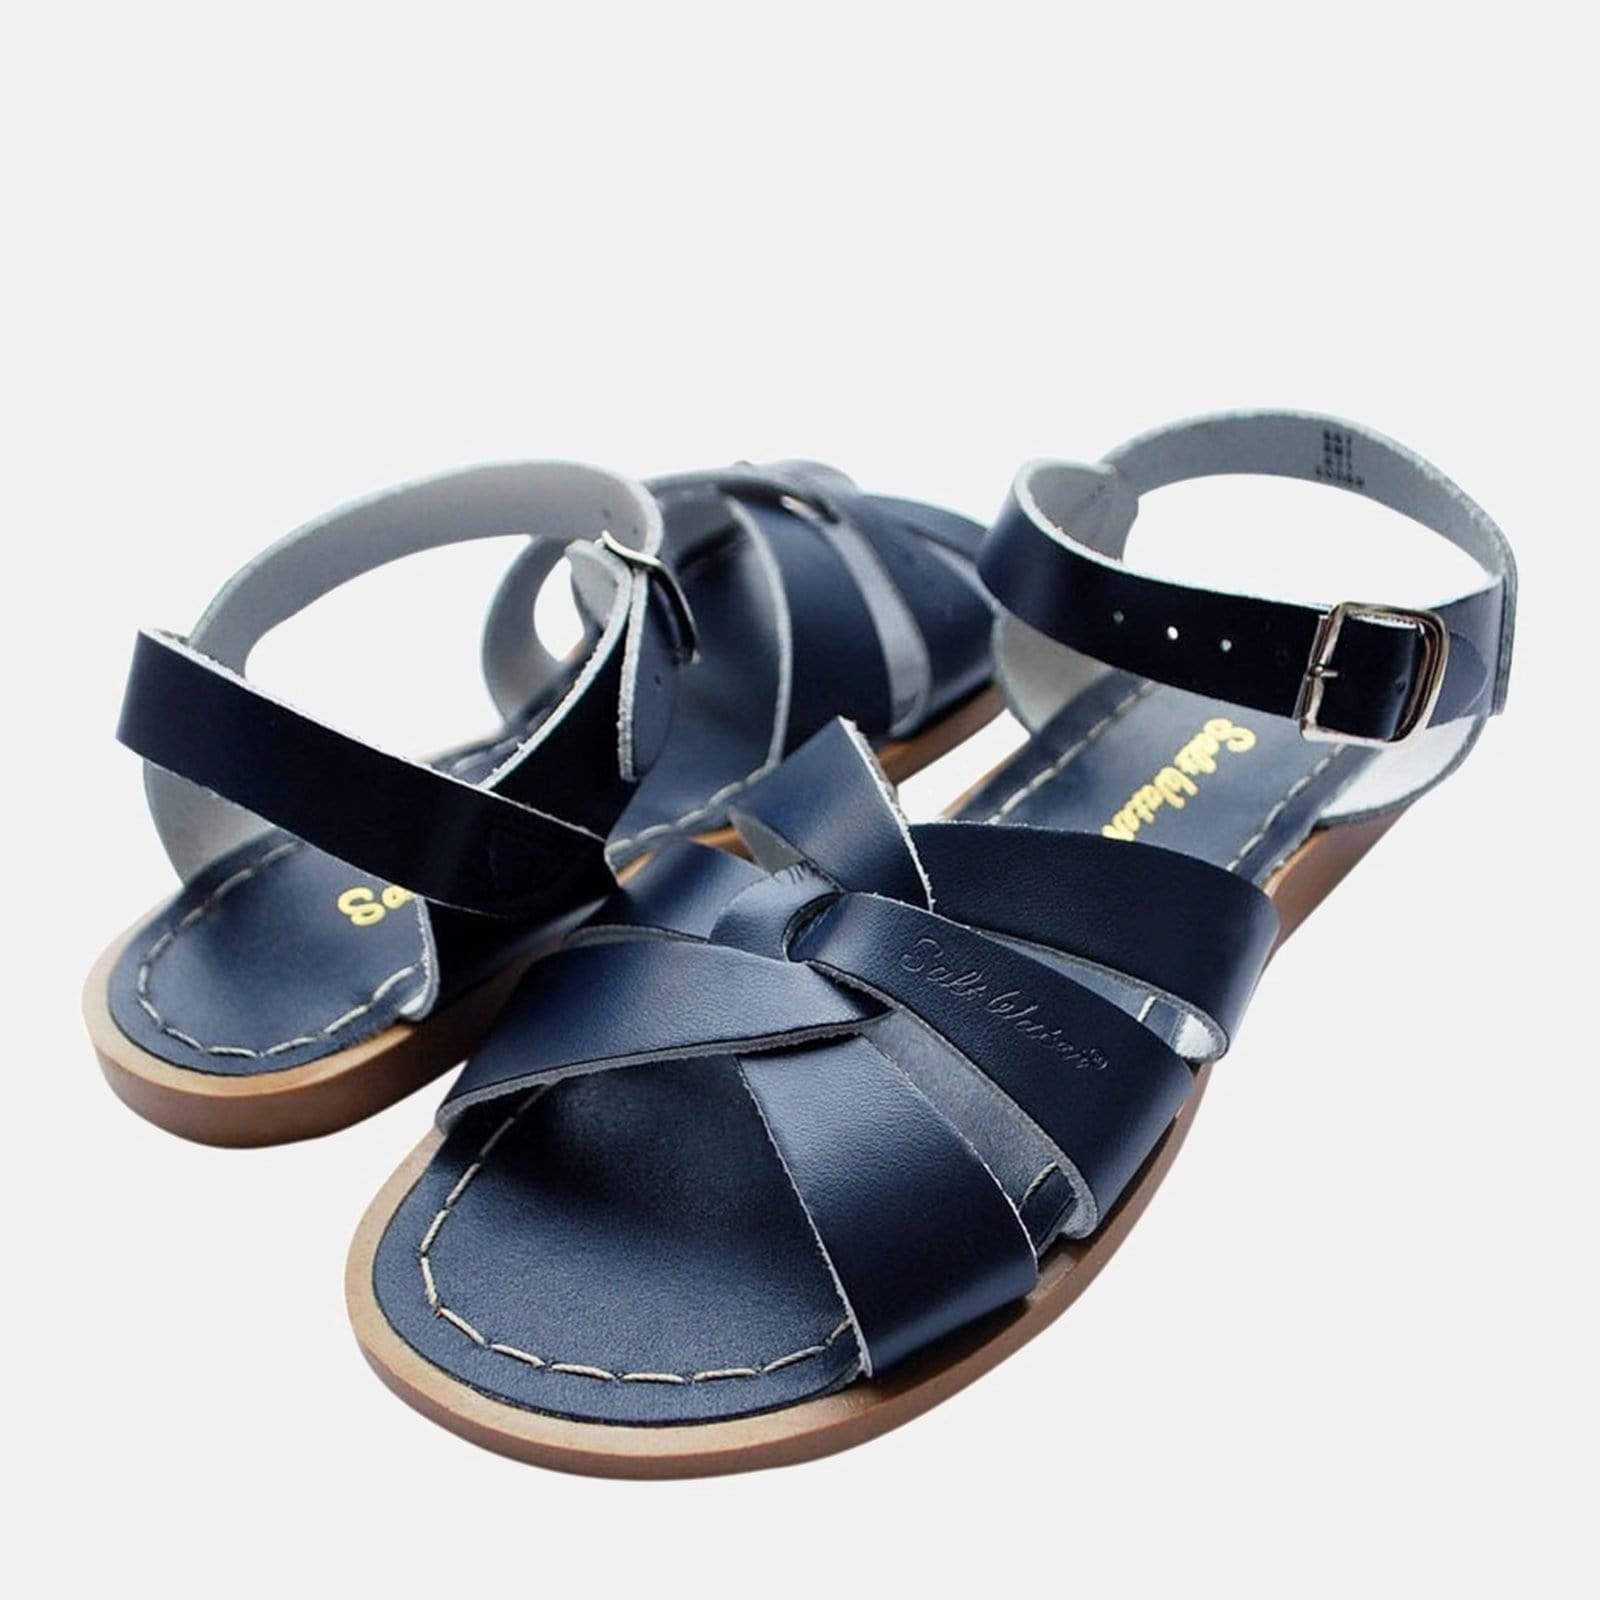 Salt-Water Footwear Salt-Water Original Navy